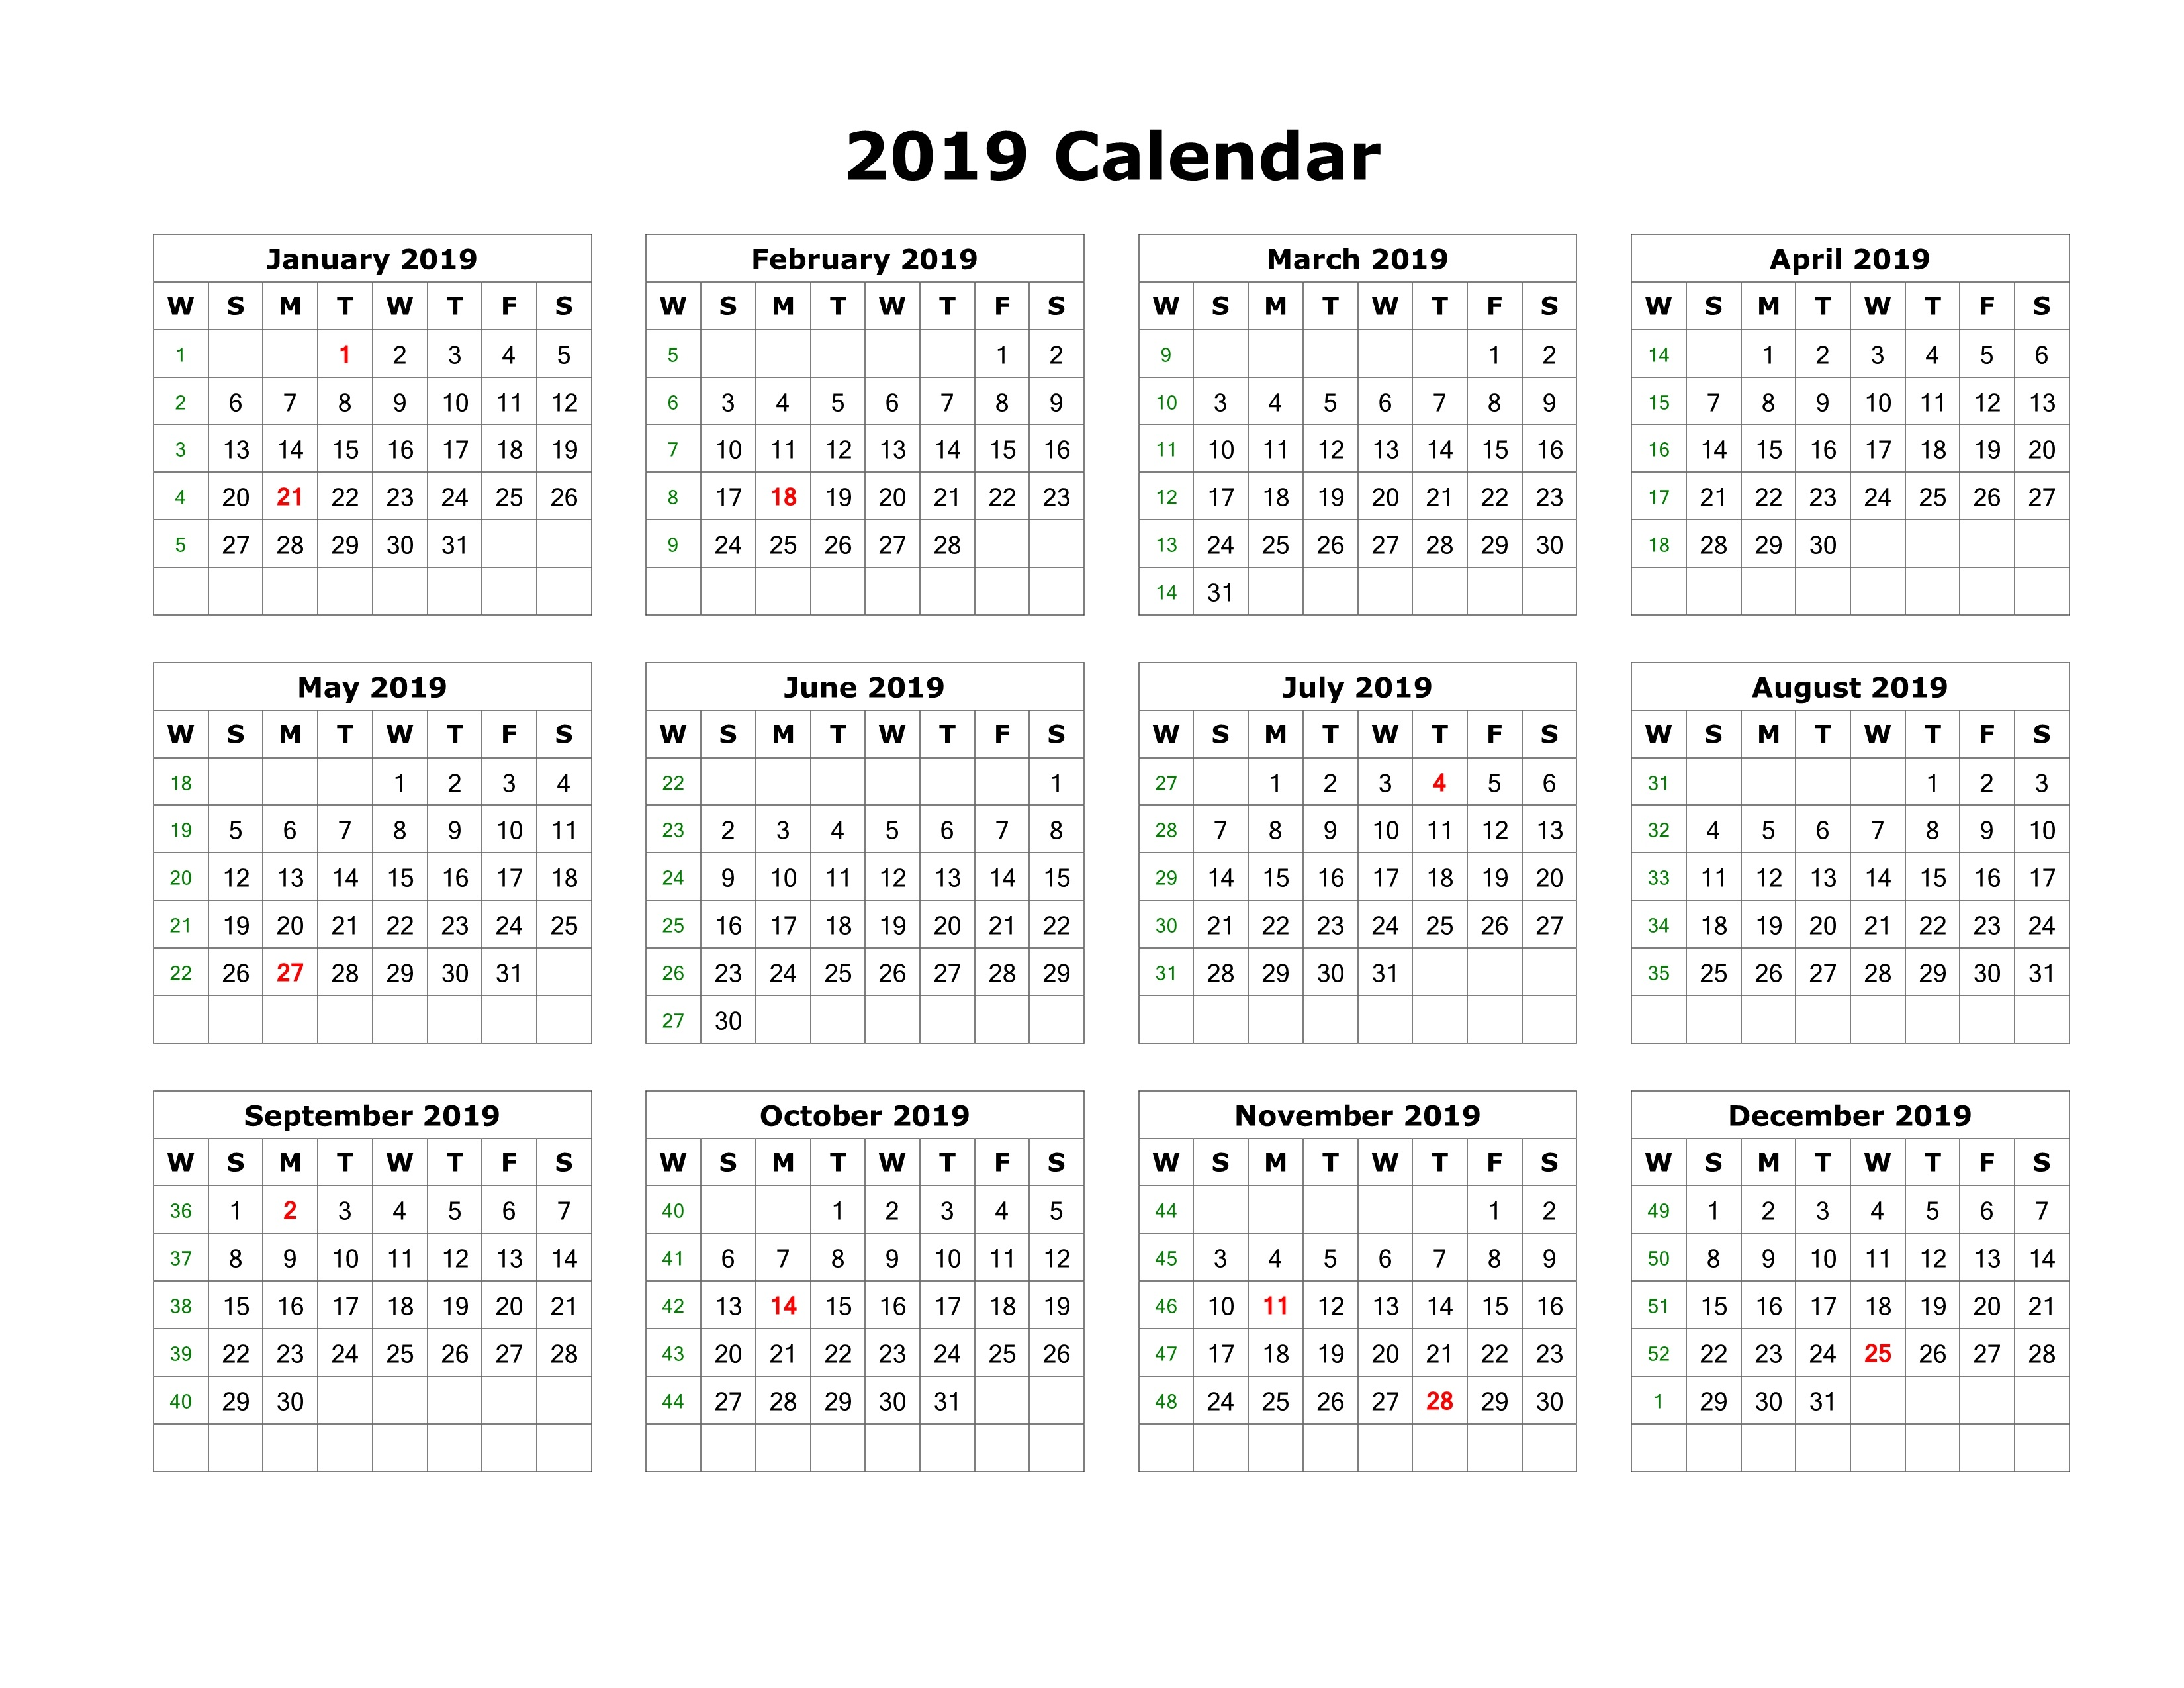 2019 Full Year Calendar Template With Get Yearly UAE Dubai Holidays Download